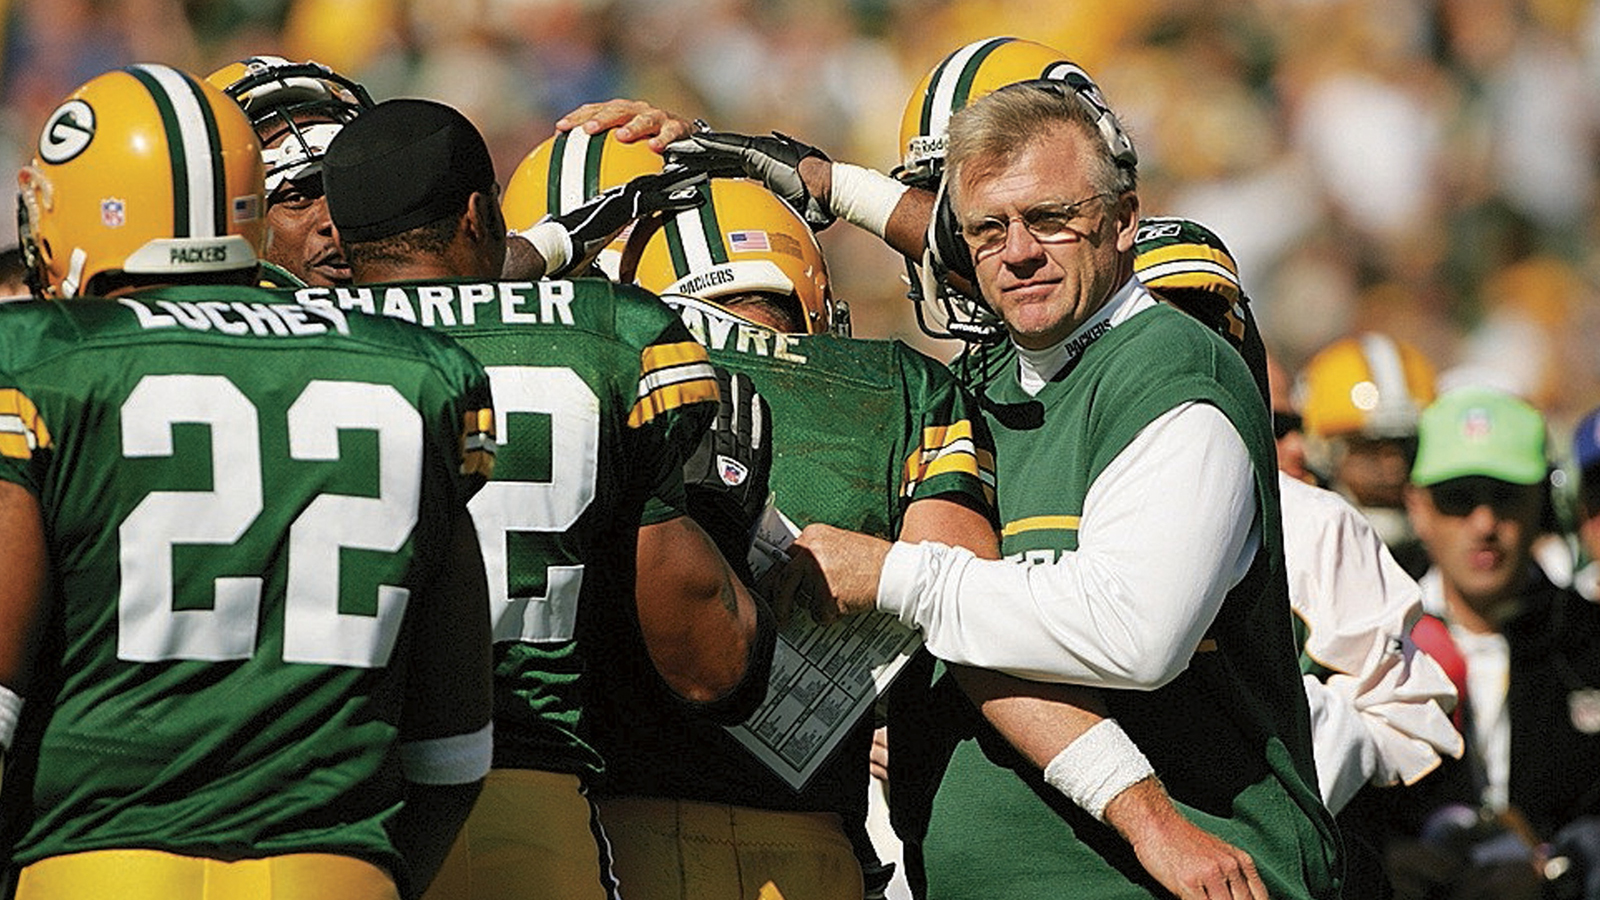 Sherman went 57-39 and won three division titles in six seasons coaching the Packers. He was fired after a 4-12 season in 2005, the Pack's first losing campaign since 1991. (Photo: John Biever for Sports Illustrated)